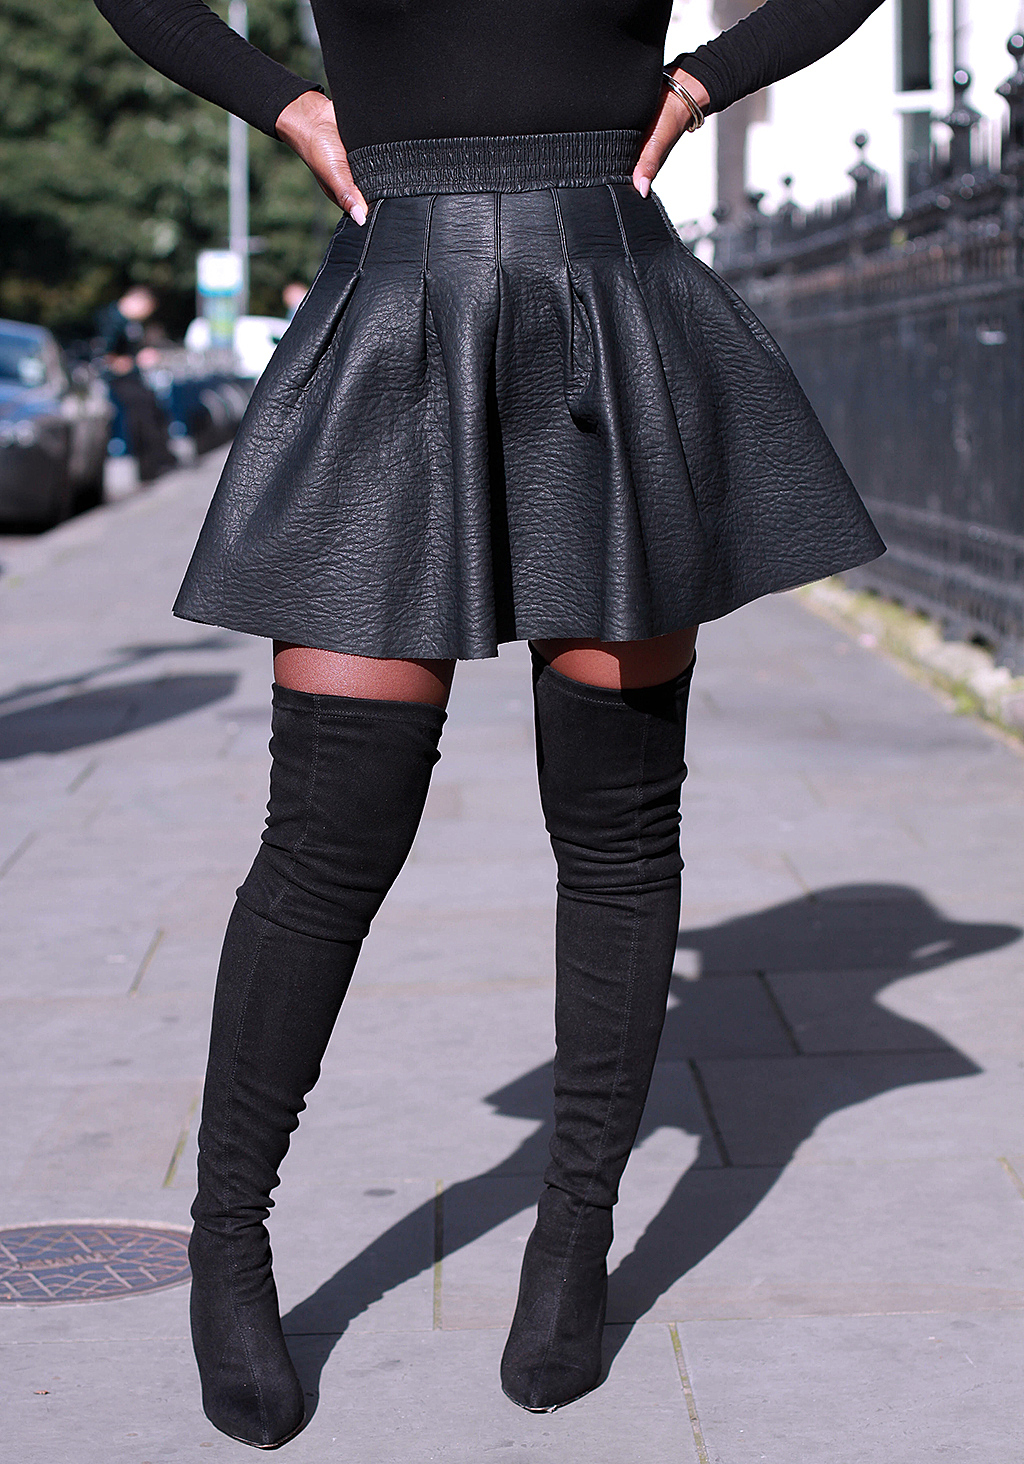 size 11 thigh high boots boot yc